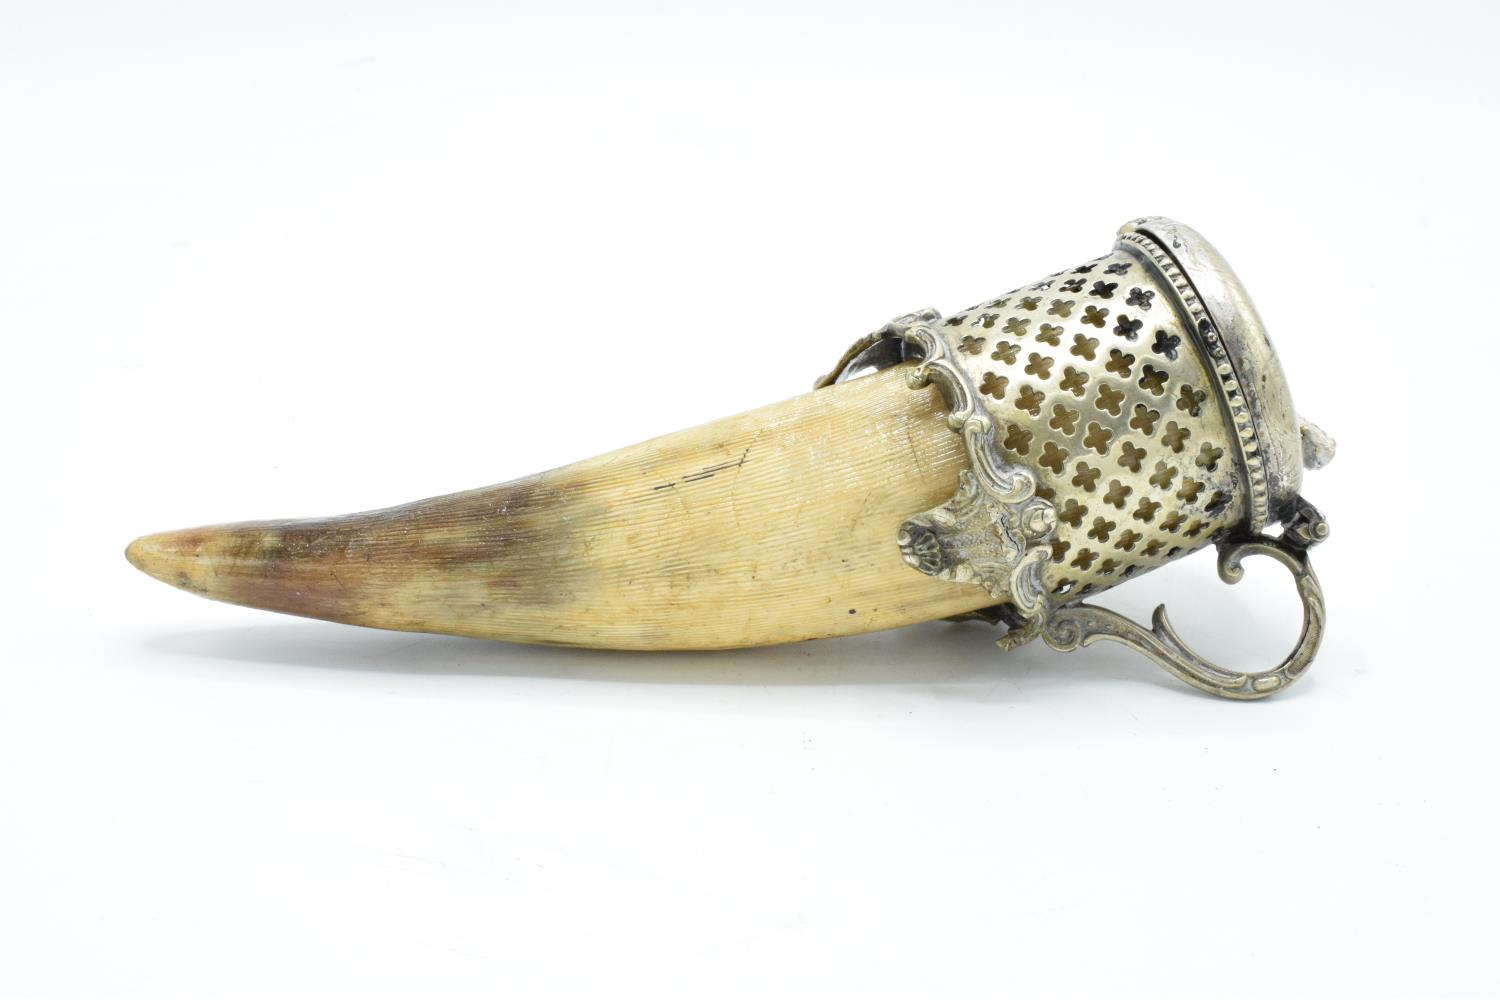 An unusual horn snuff mull/ box with a silver plate lid section and ornate mount. In good